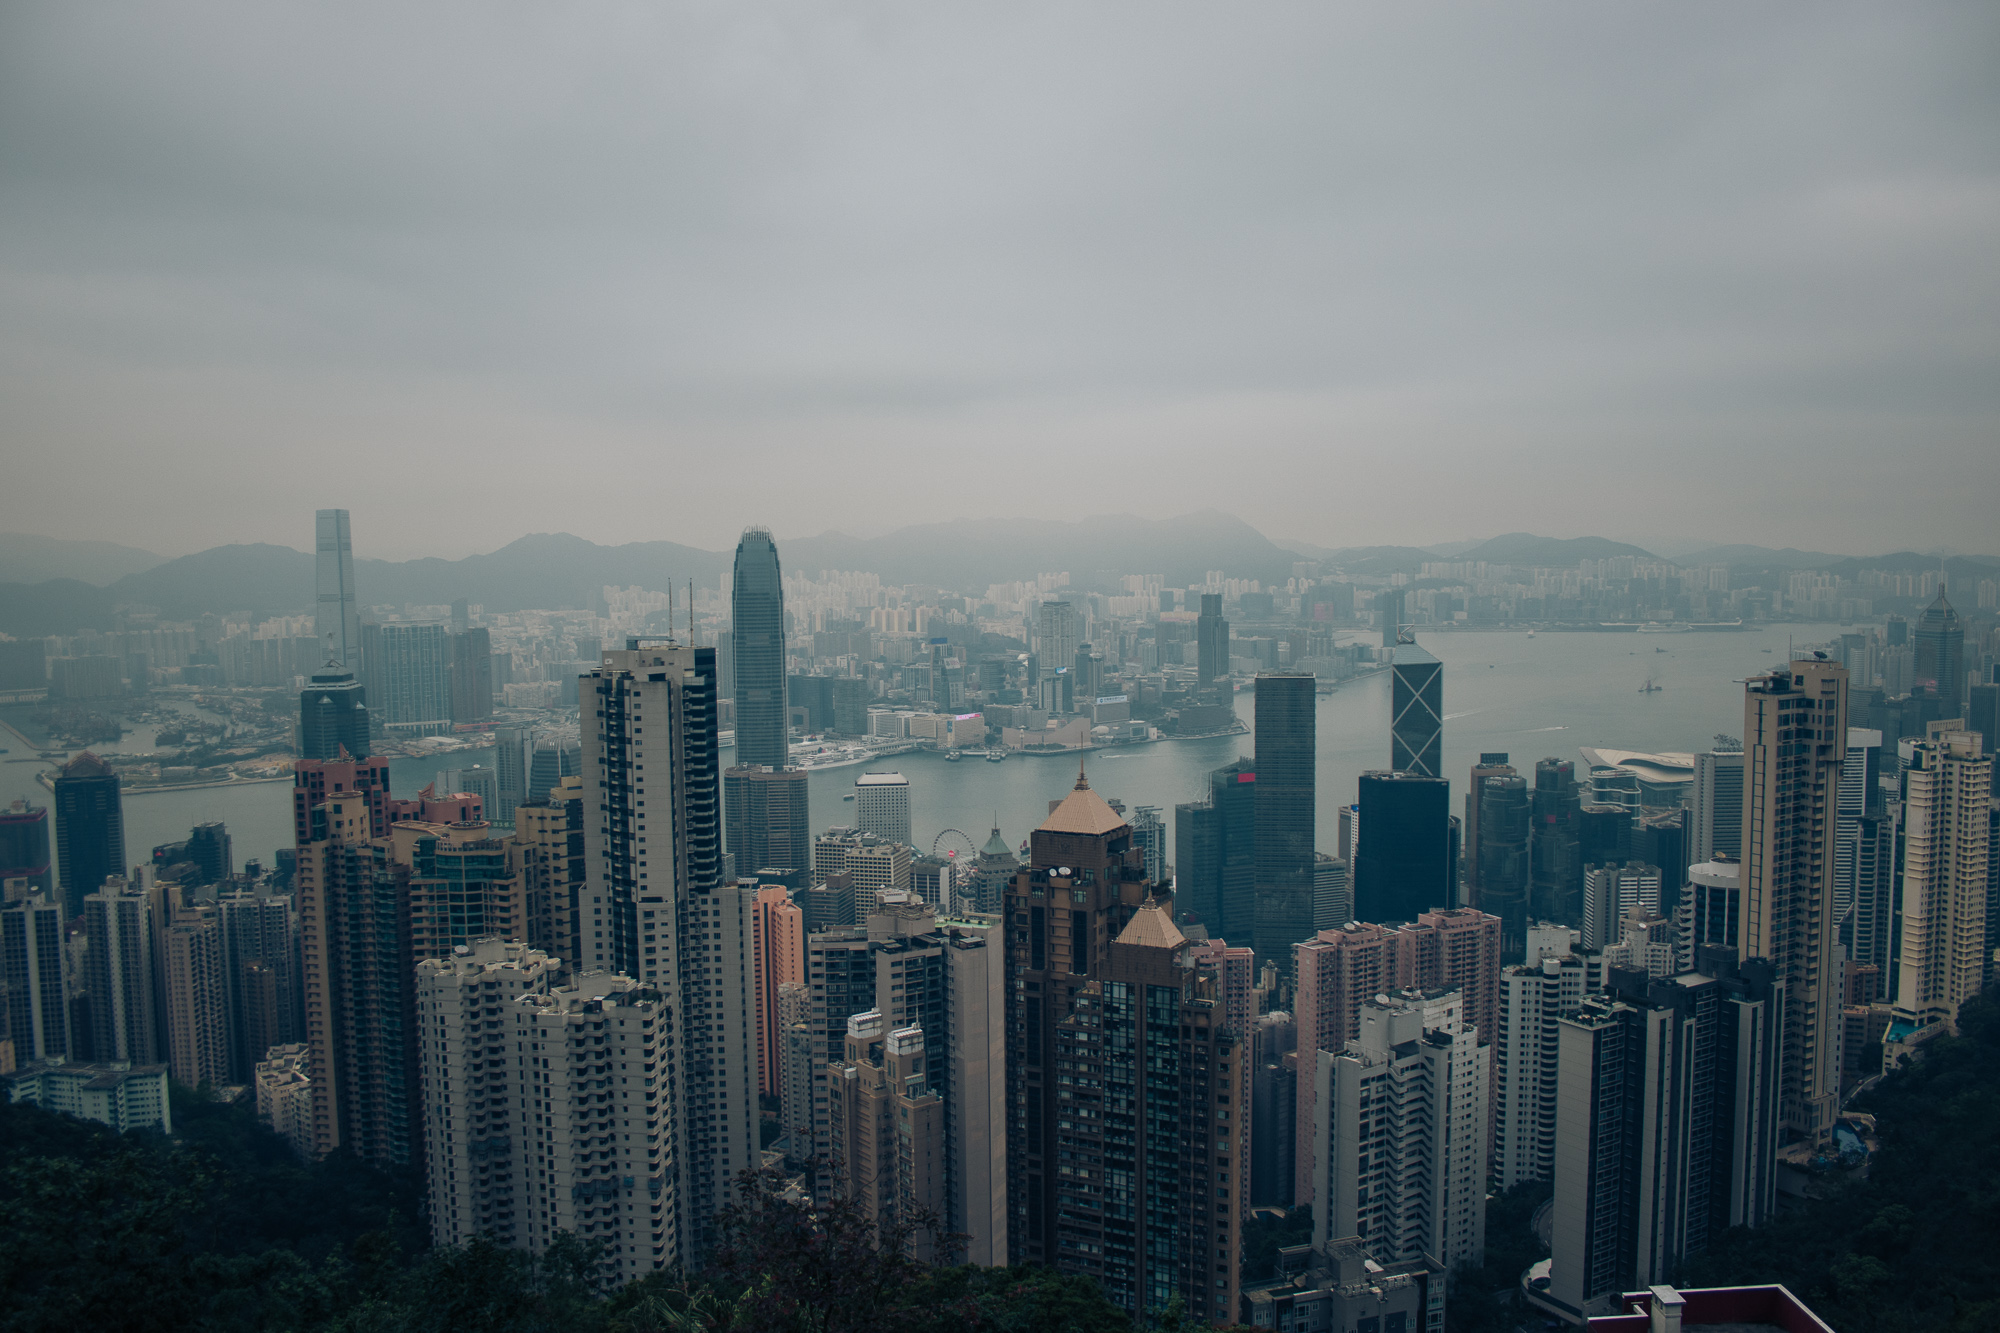 And the Hong Kong skyline from behind it - up in The Peak.